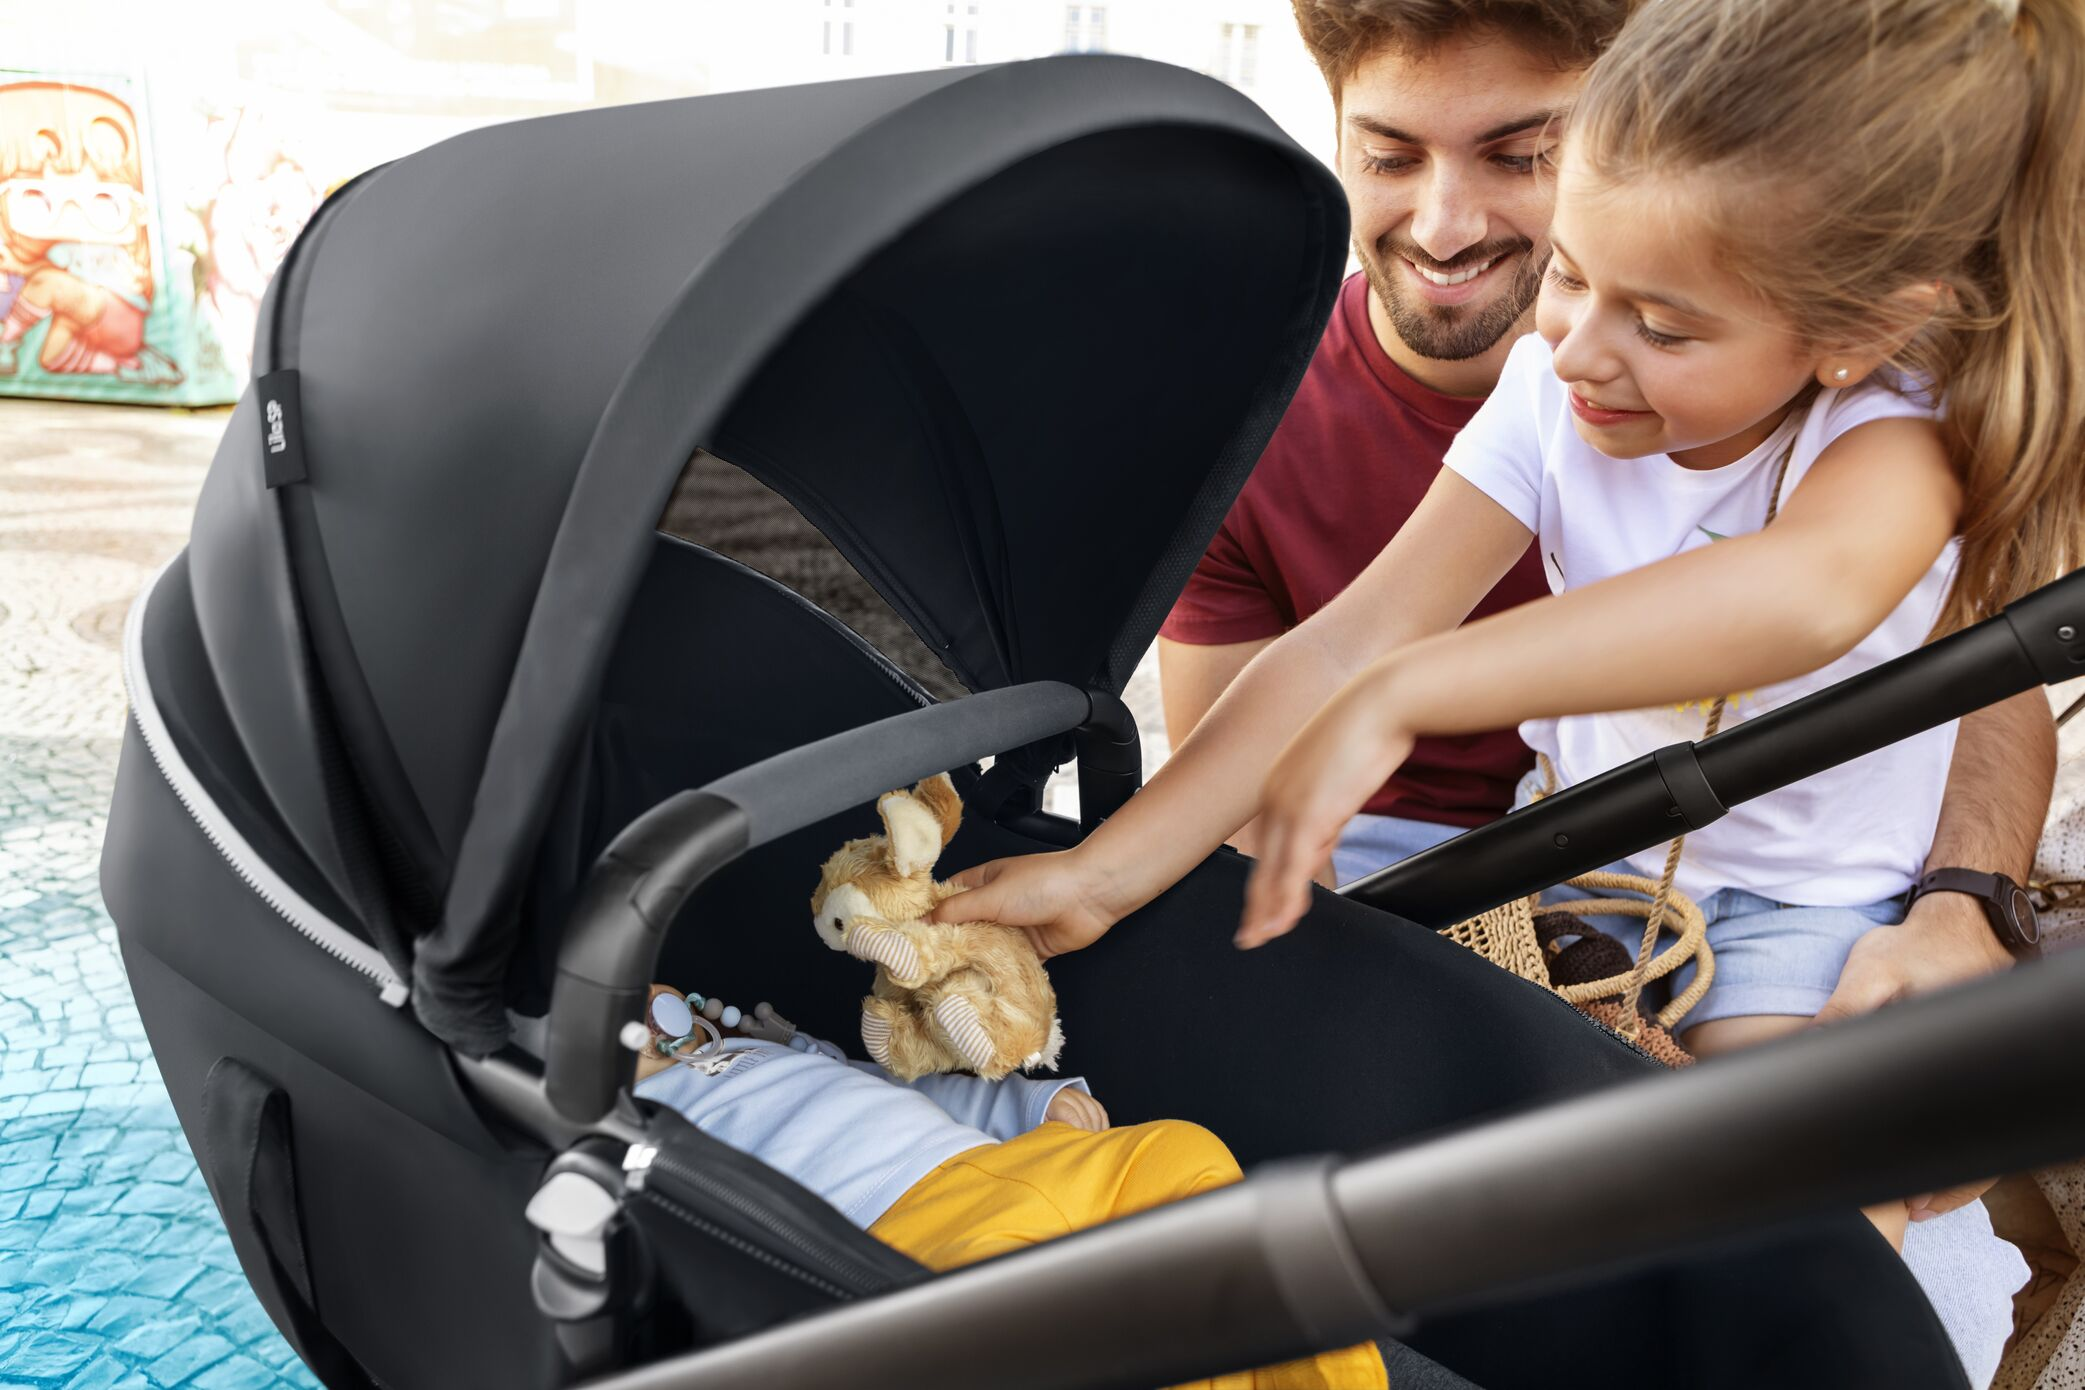 MC1236_2020_Maxicosi_stroller_Lila SP_Lifestyle_Summer_SOYcarrycotkidsinteracting_Landscape_RGB